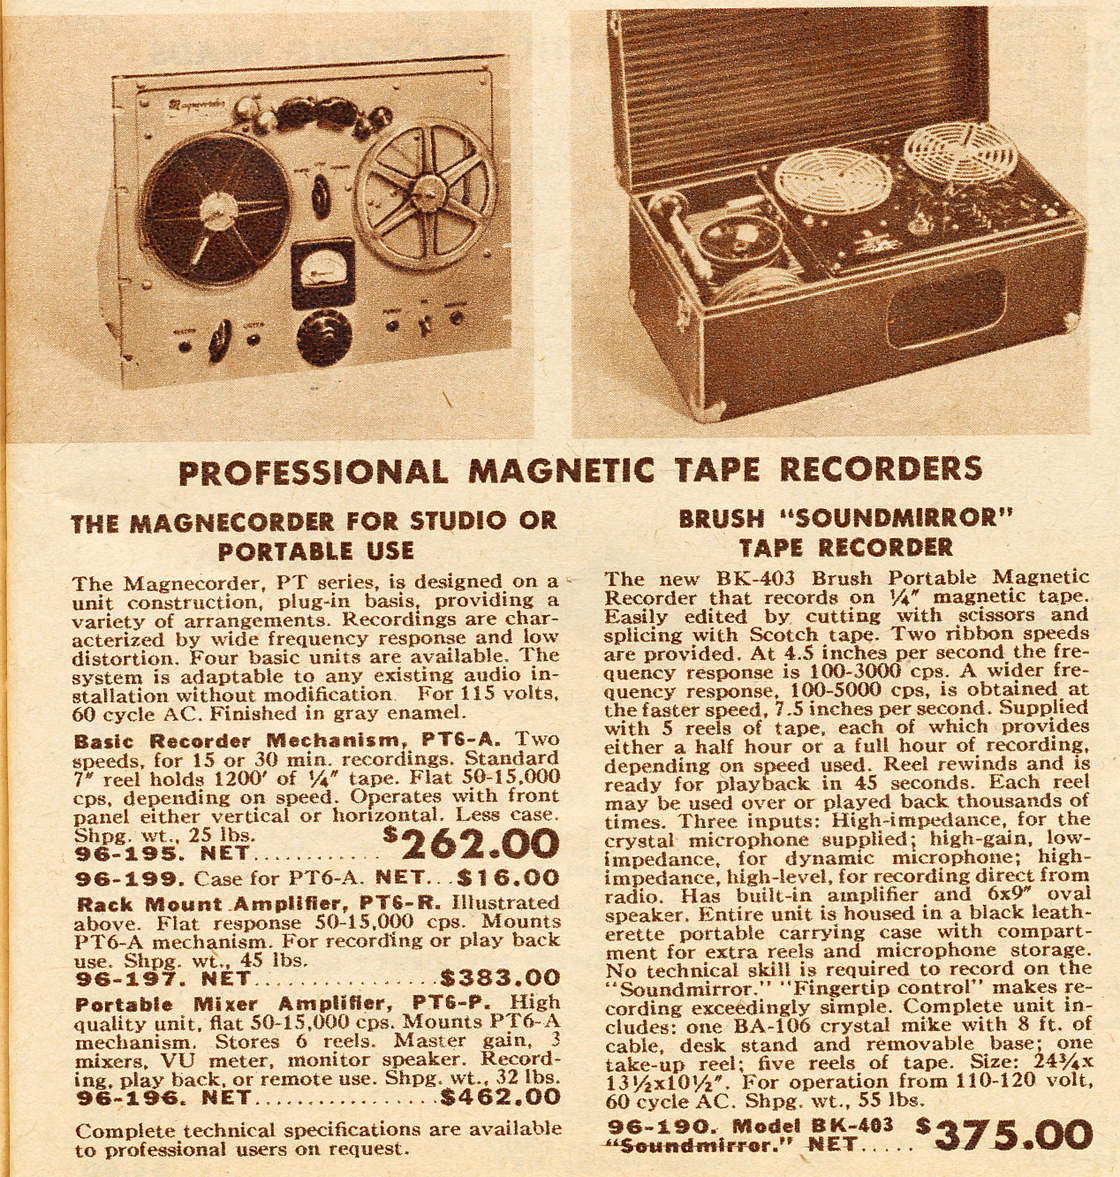 Brush Development Company adin the Reel2ReelTexas.com vintage recording collection